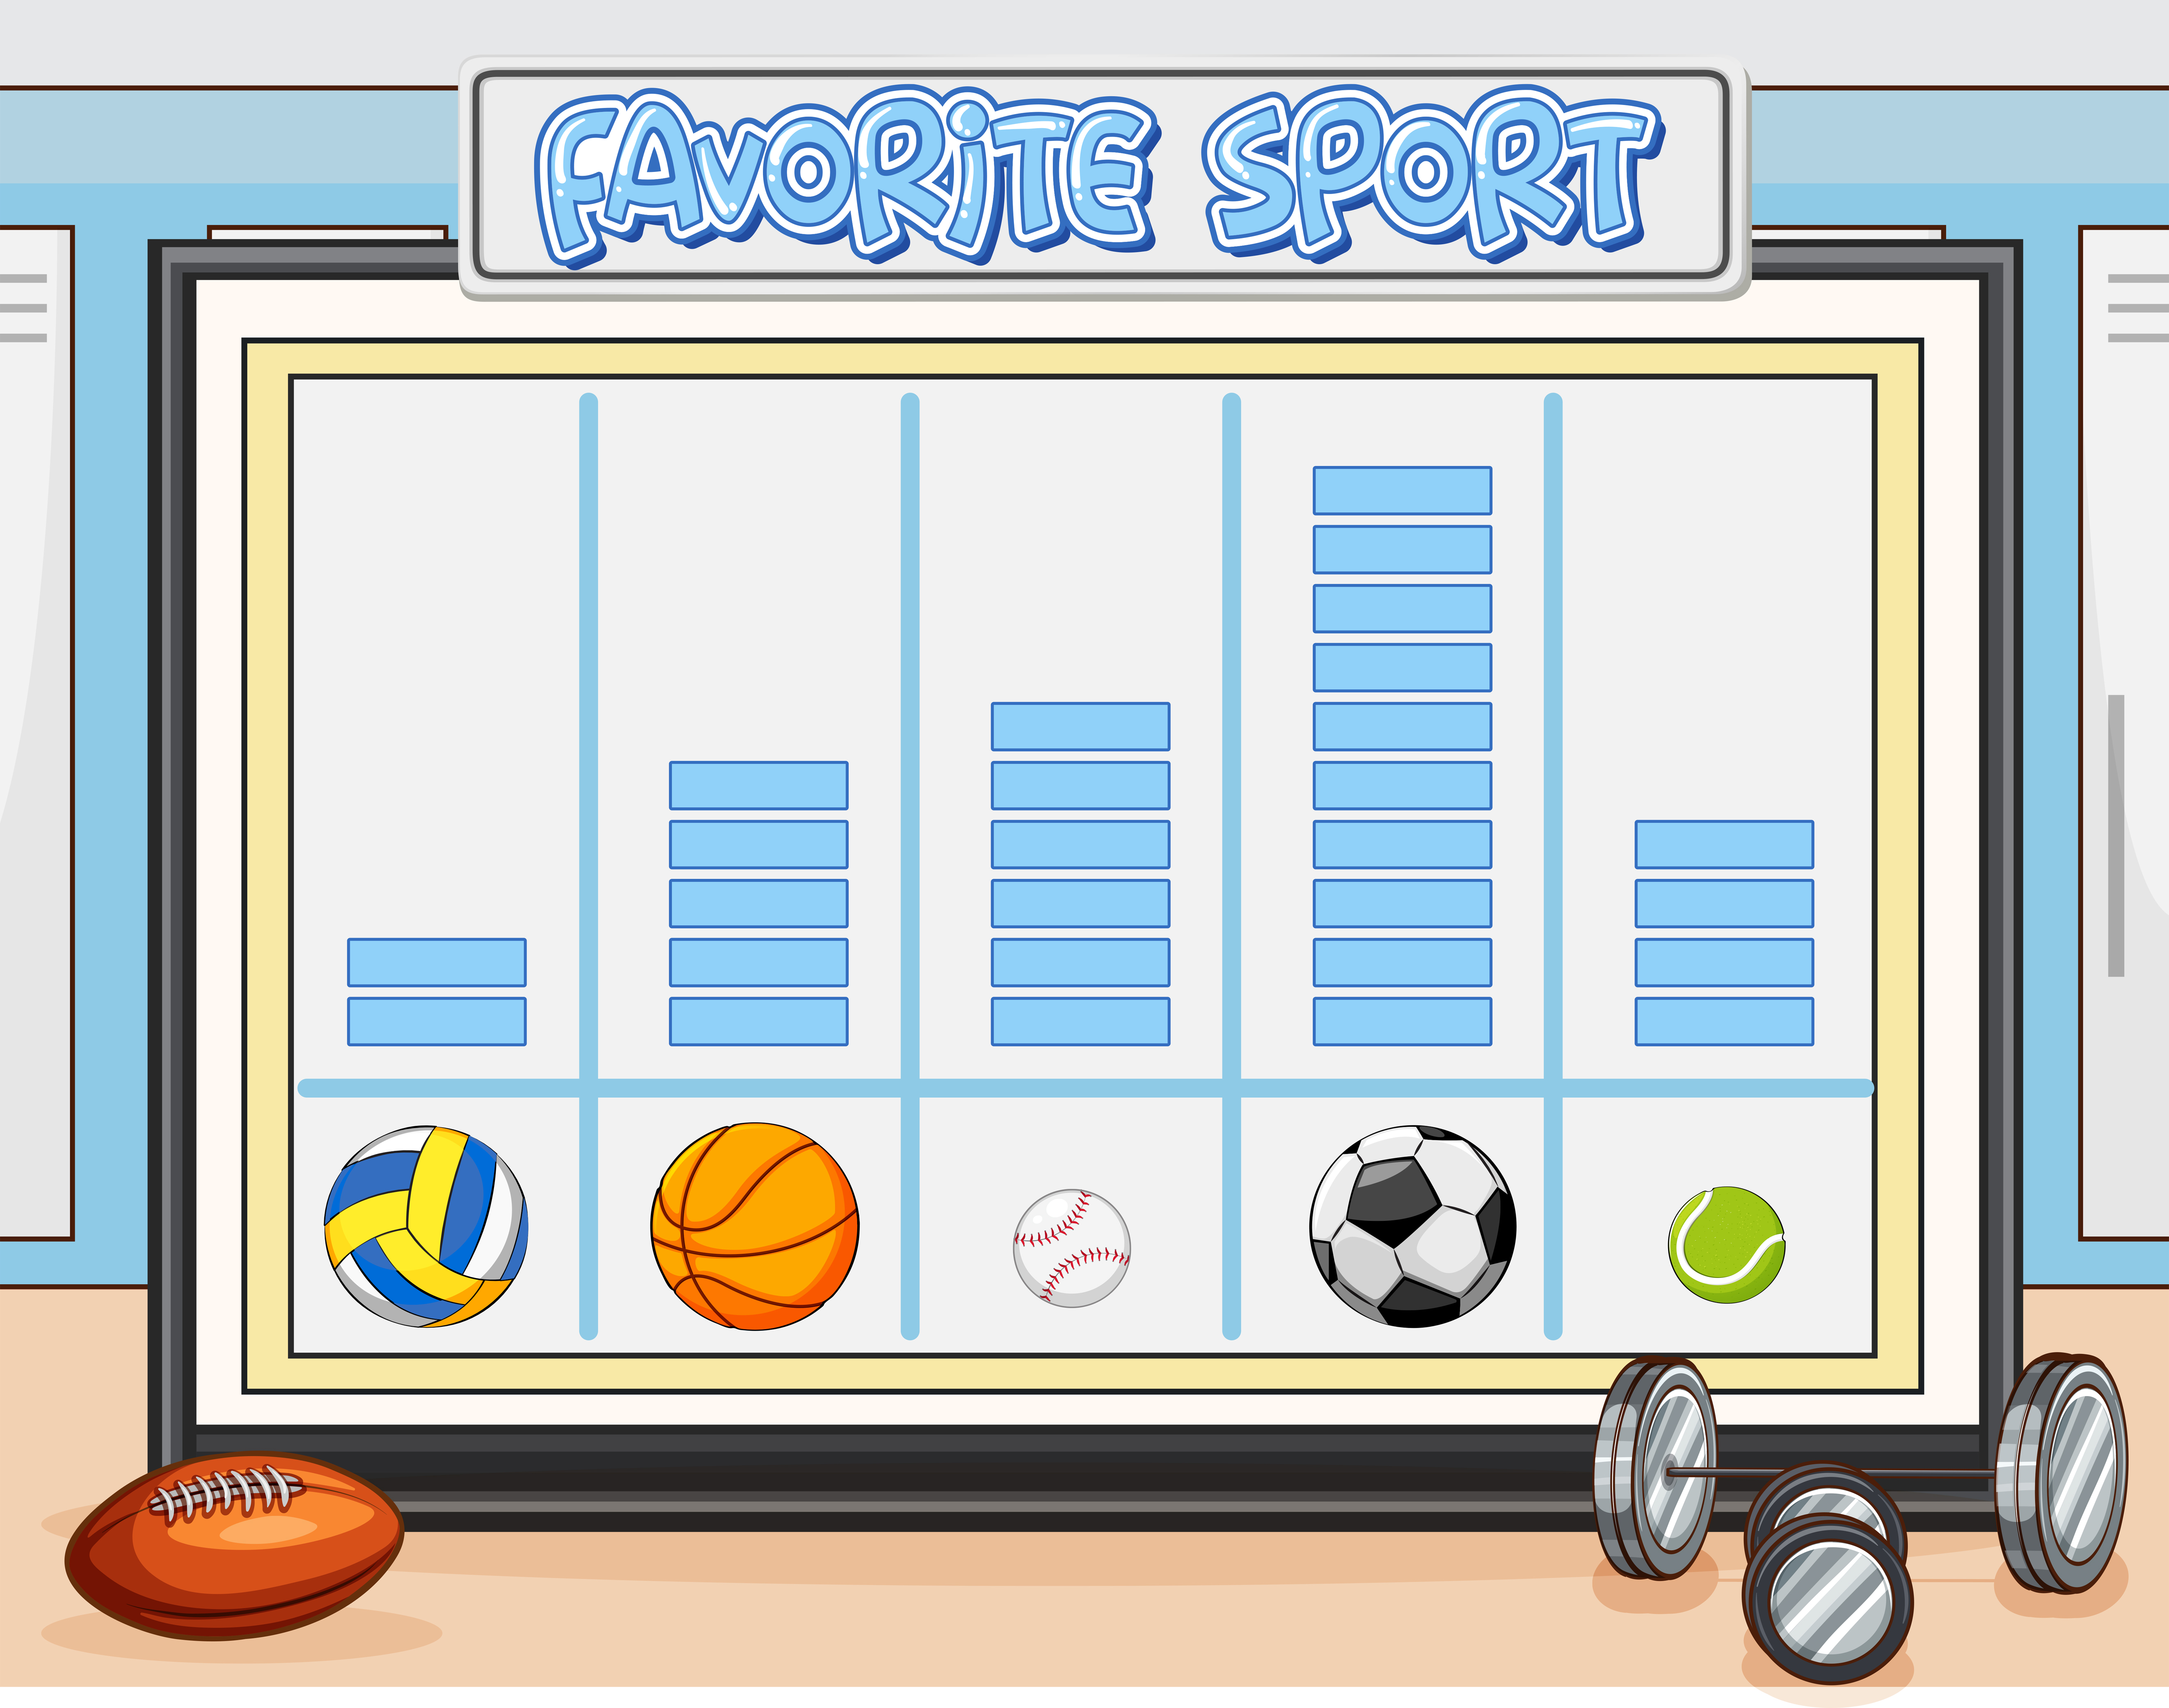 Count Favorite Sport Worksheet